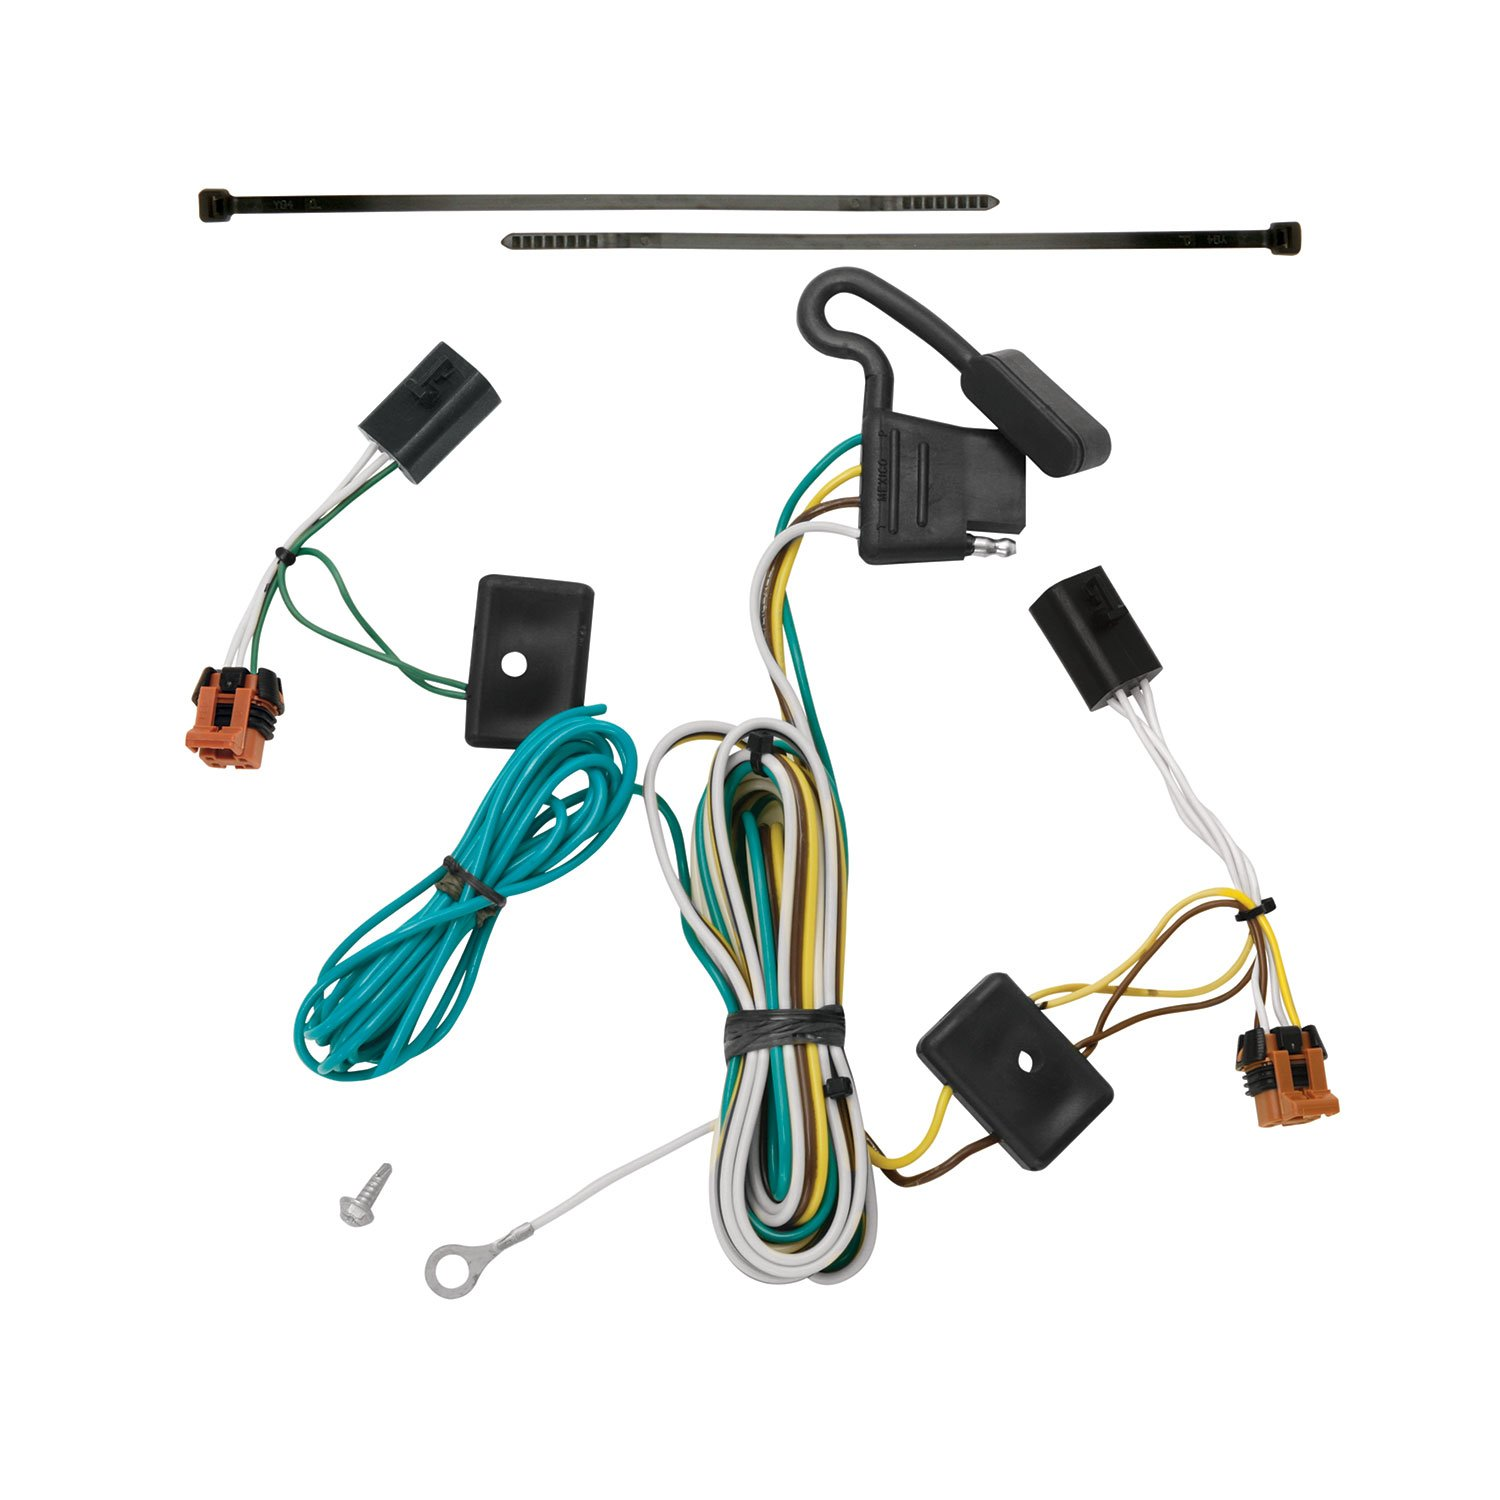 71chR nJvBL._SL1500_ amazon com tekonsha 118451 t one connector assembly automotive gmc acadia trailer wiring harness location at soozxer.org